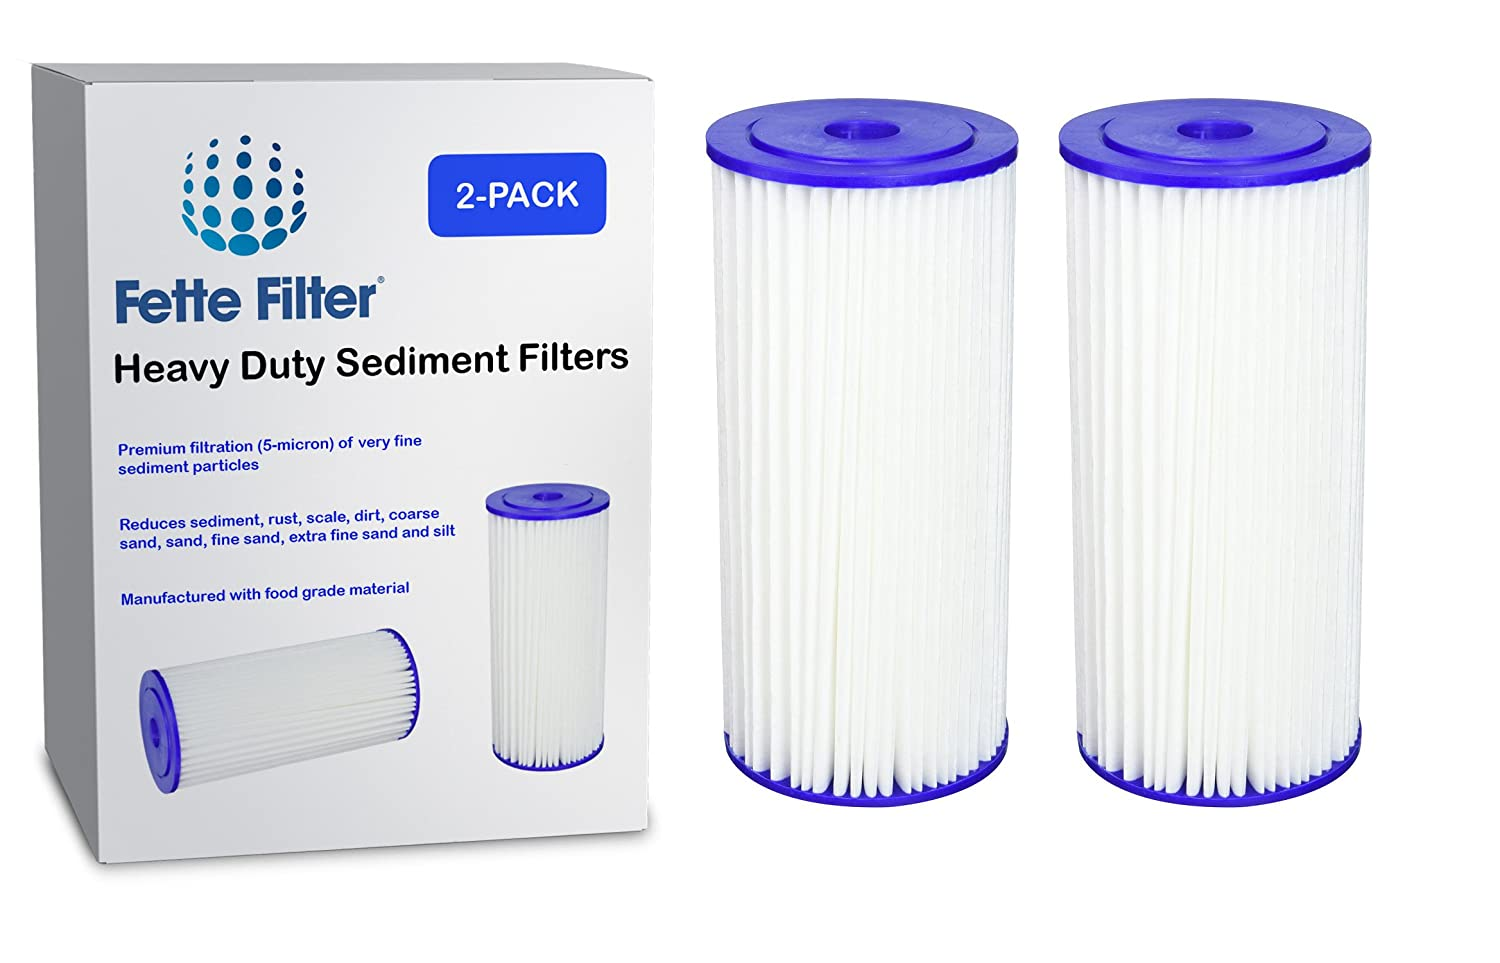 Fette Filter - Heavy Duty Sediment Filter Compatible with Culligan R50-BBSA. Also Compatible with GE FXHSC, Pentek R50-BB and Dupont WFHDC3001. Whole House Filters. (2-Pack)